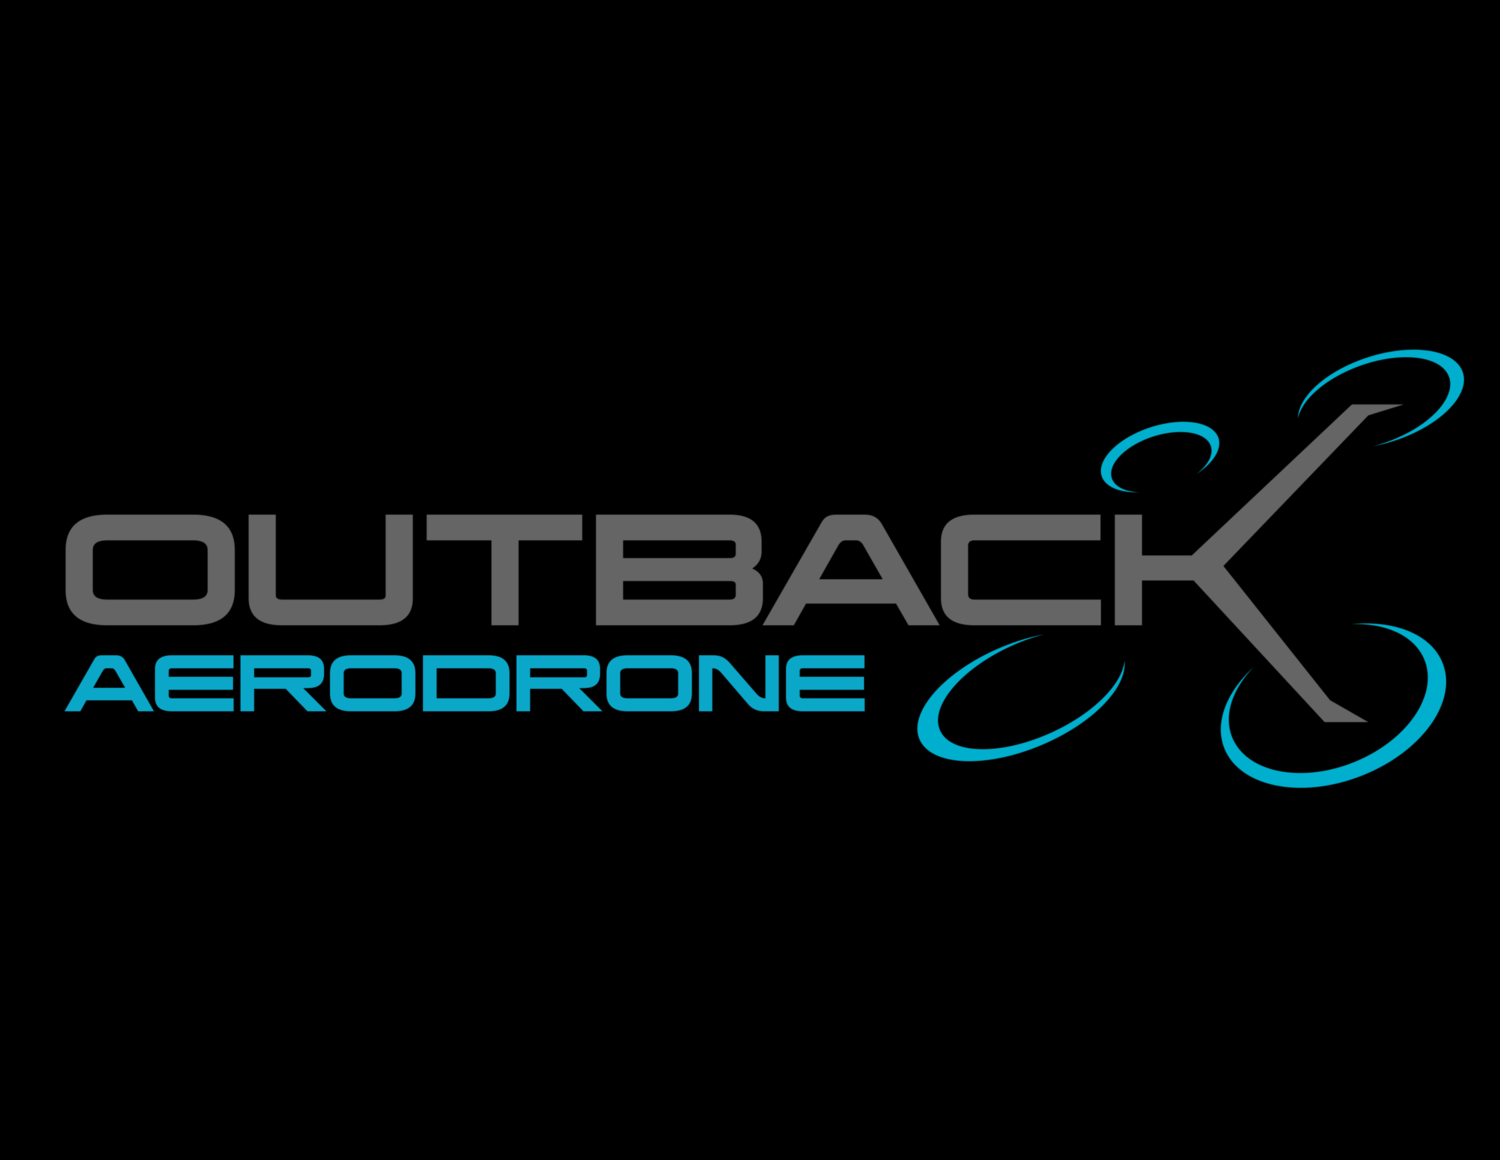 Outback Aerodrone